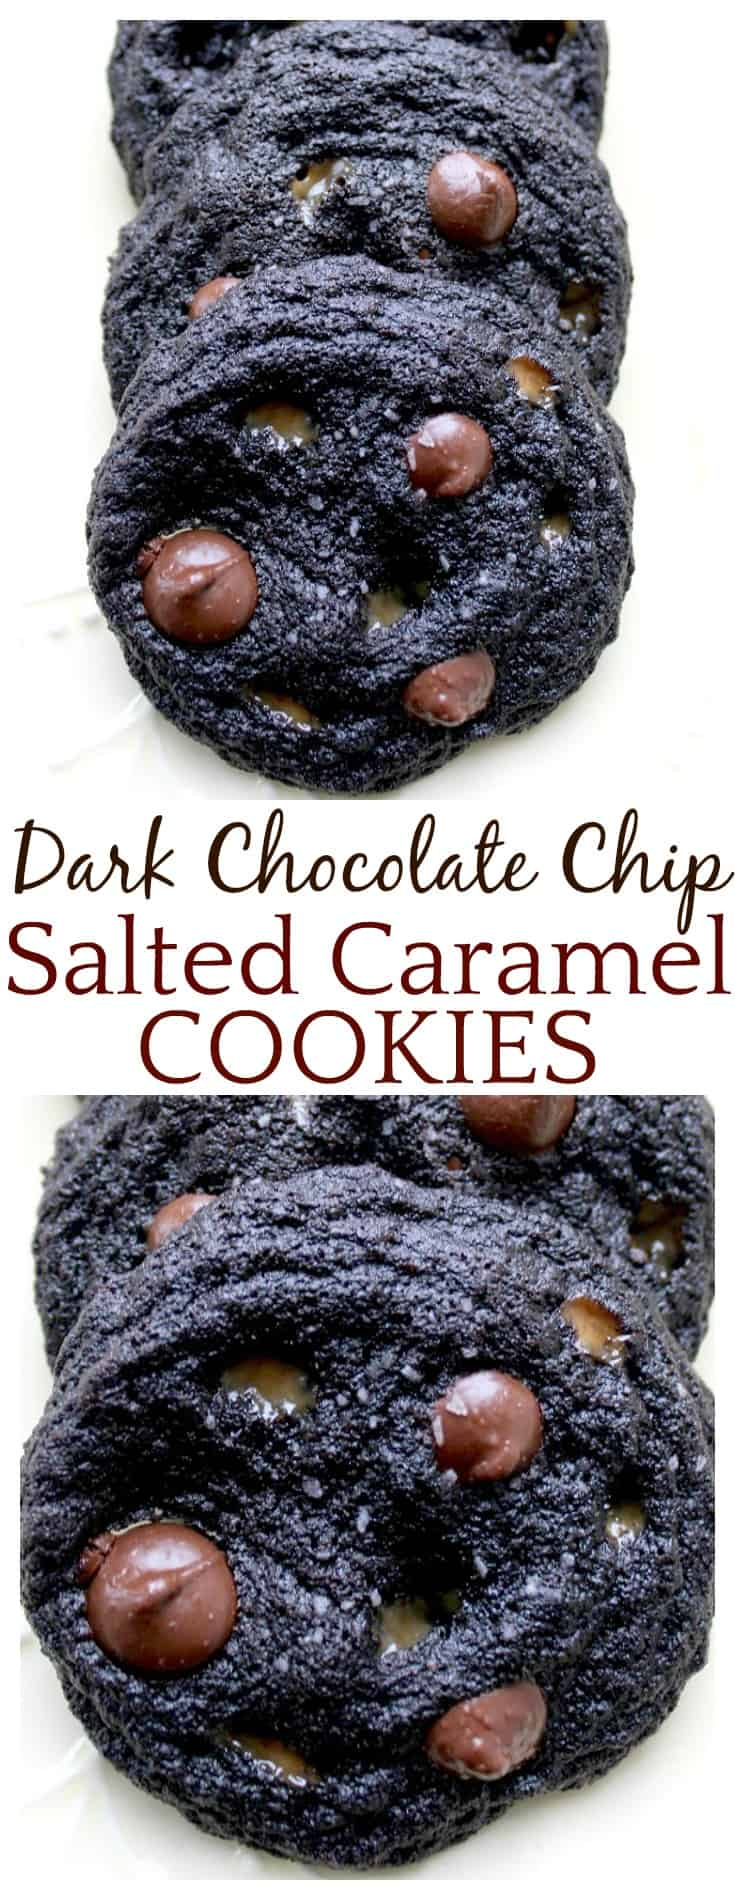 These Dark Chocolate Chip Salted Caramel Cookies are perfection! They are decadent with a chewy center and crispy edges! This cookie recipe combines chocolate with salted caramel...oh heck yes! Just delicious!